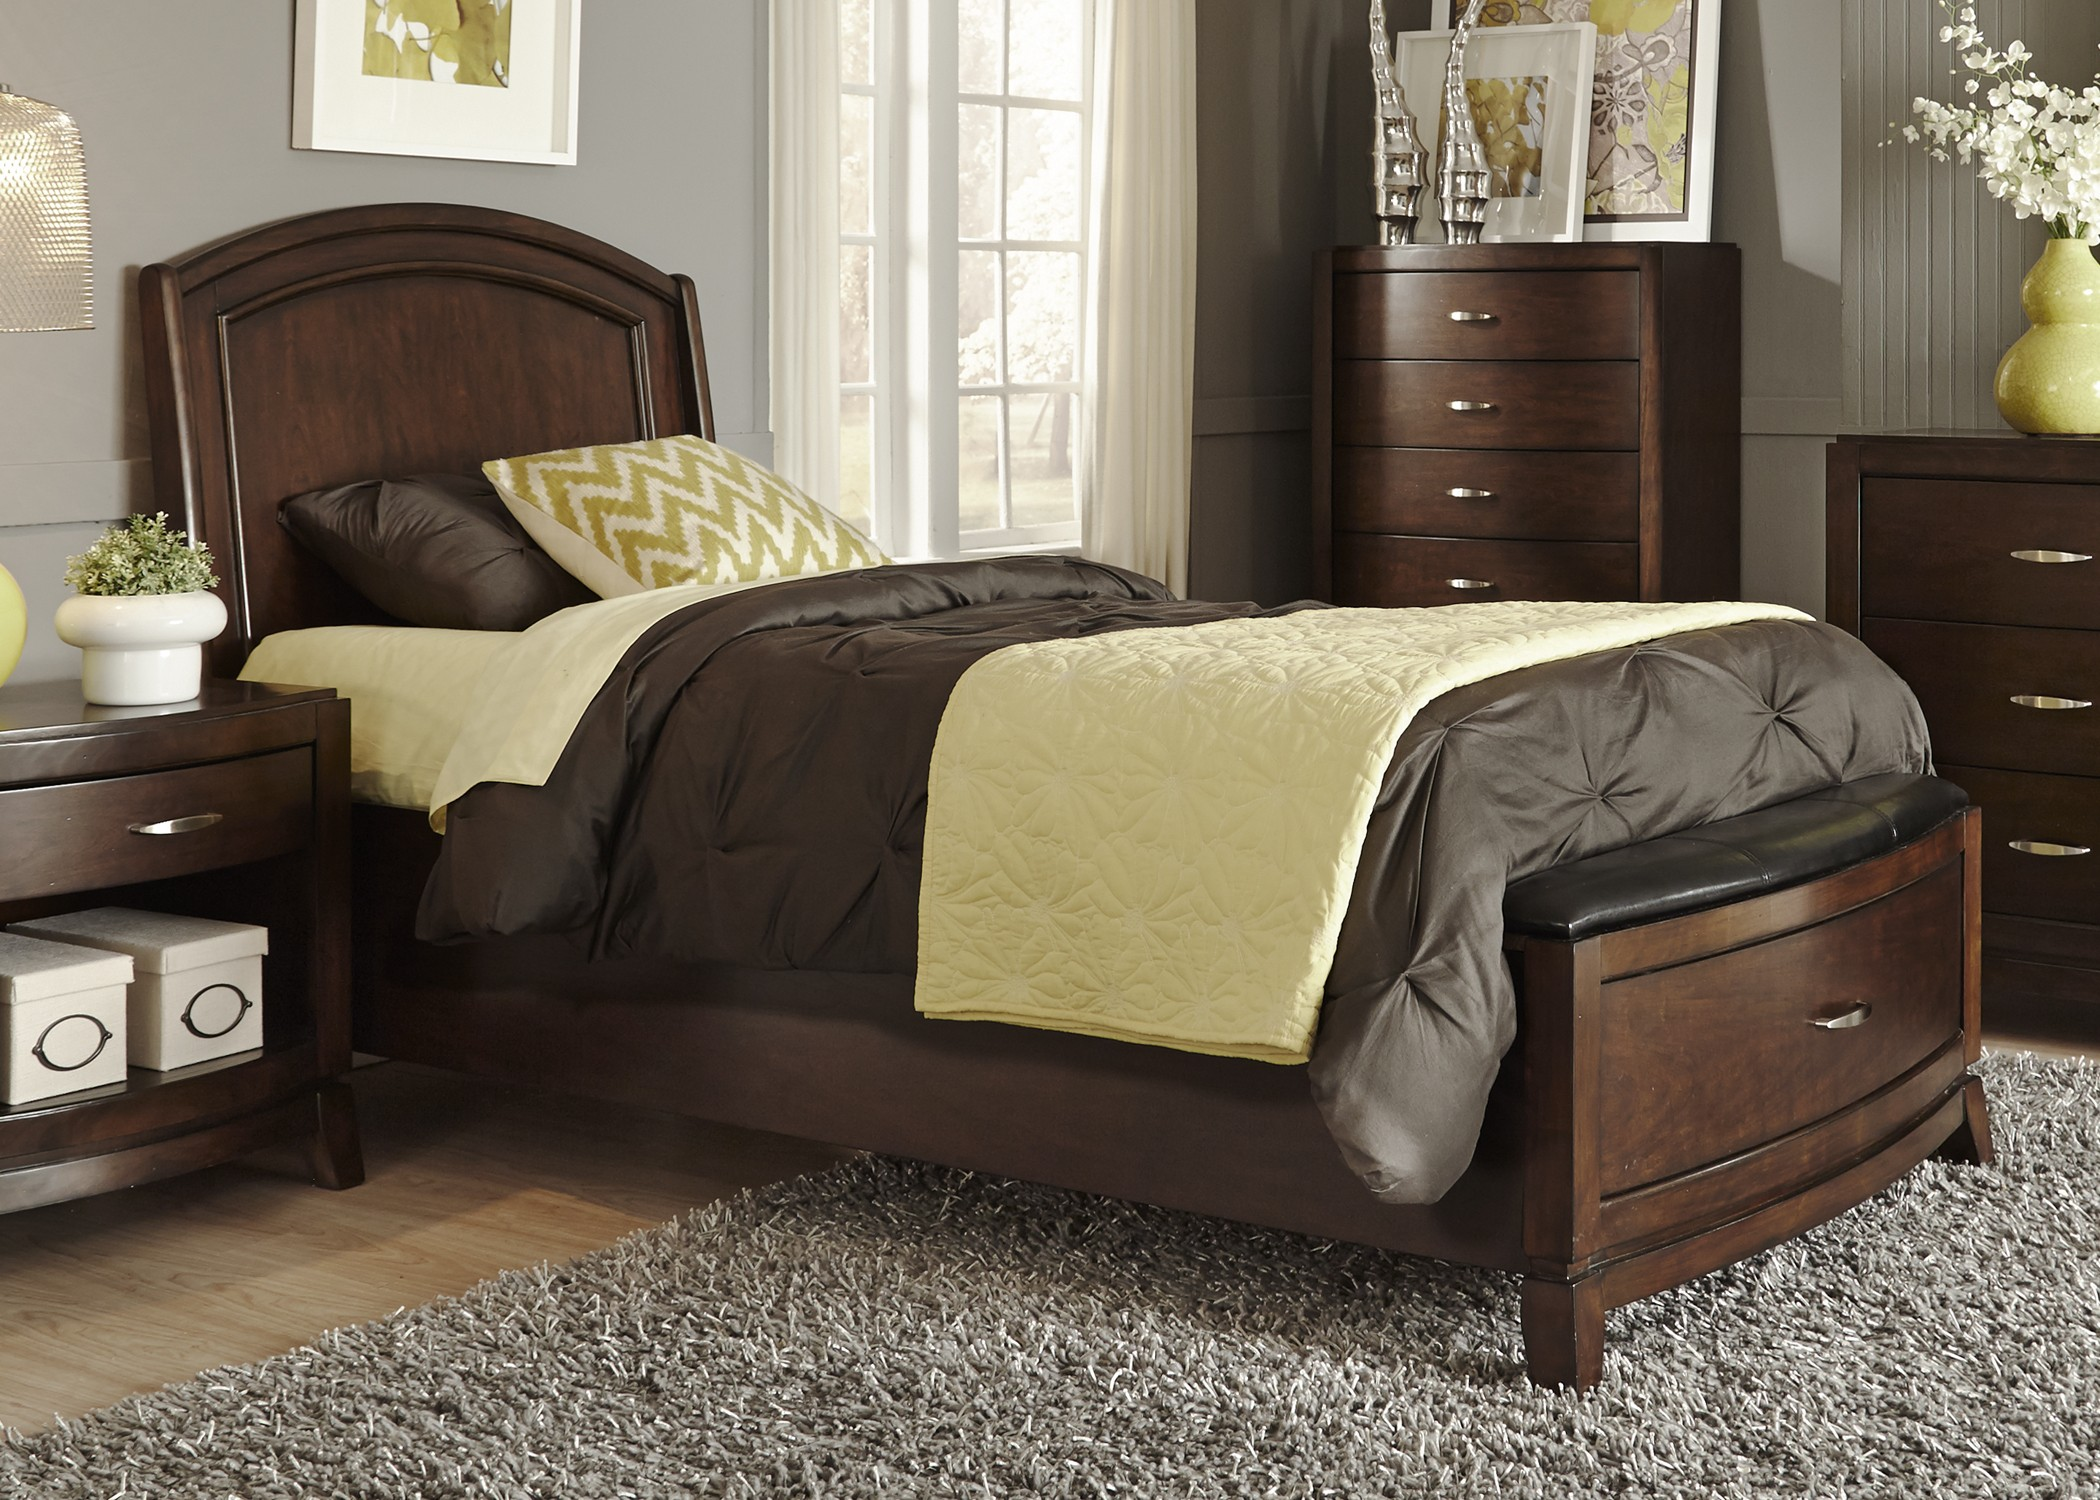 Avalon truffle youth leather storage bedroom set from liberty 505 ybr tls coleman furniture for Youth storage bedroom furniture